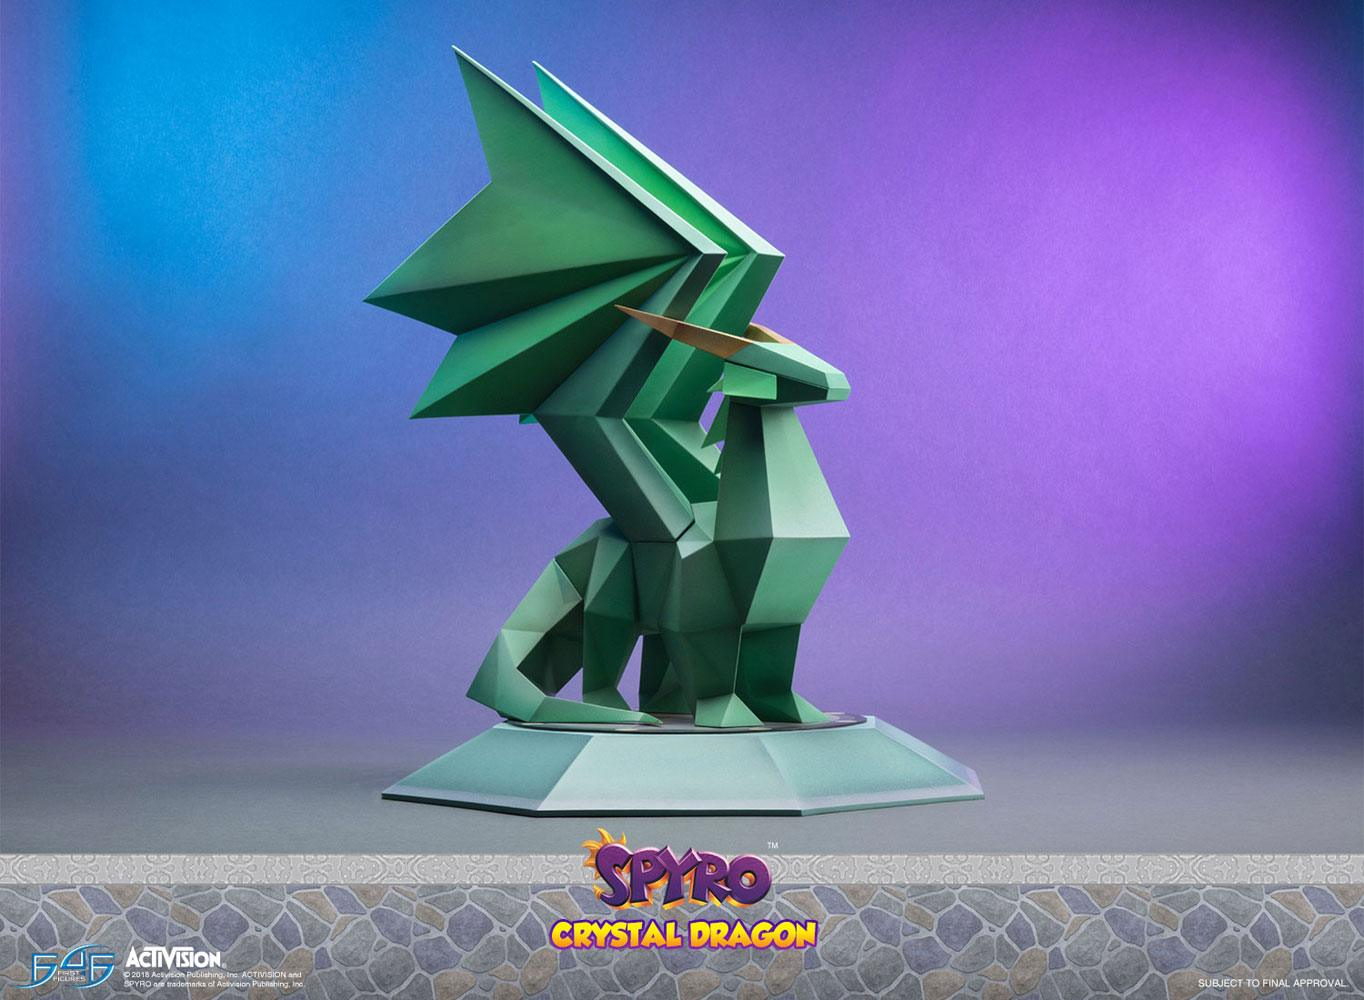 Crystal Dragon Spyro the Dragon Statue by First 4 Figures